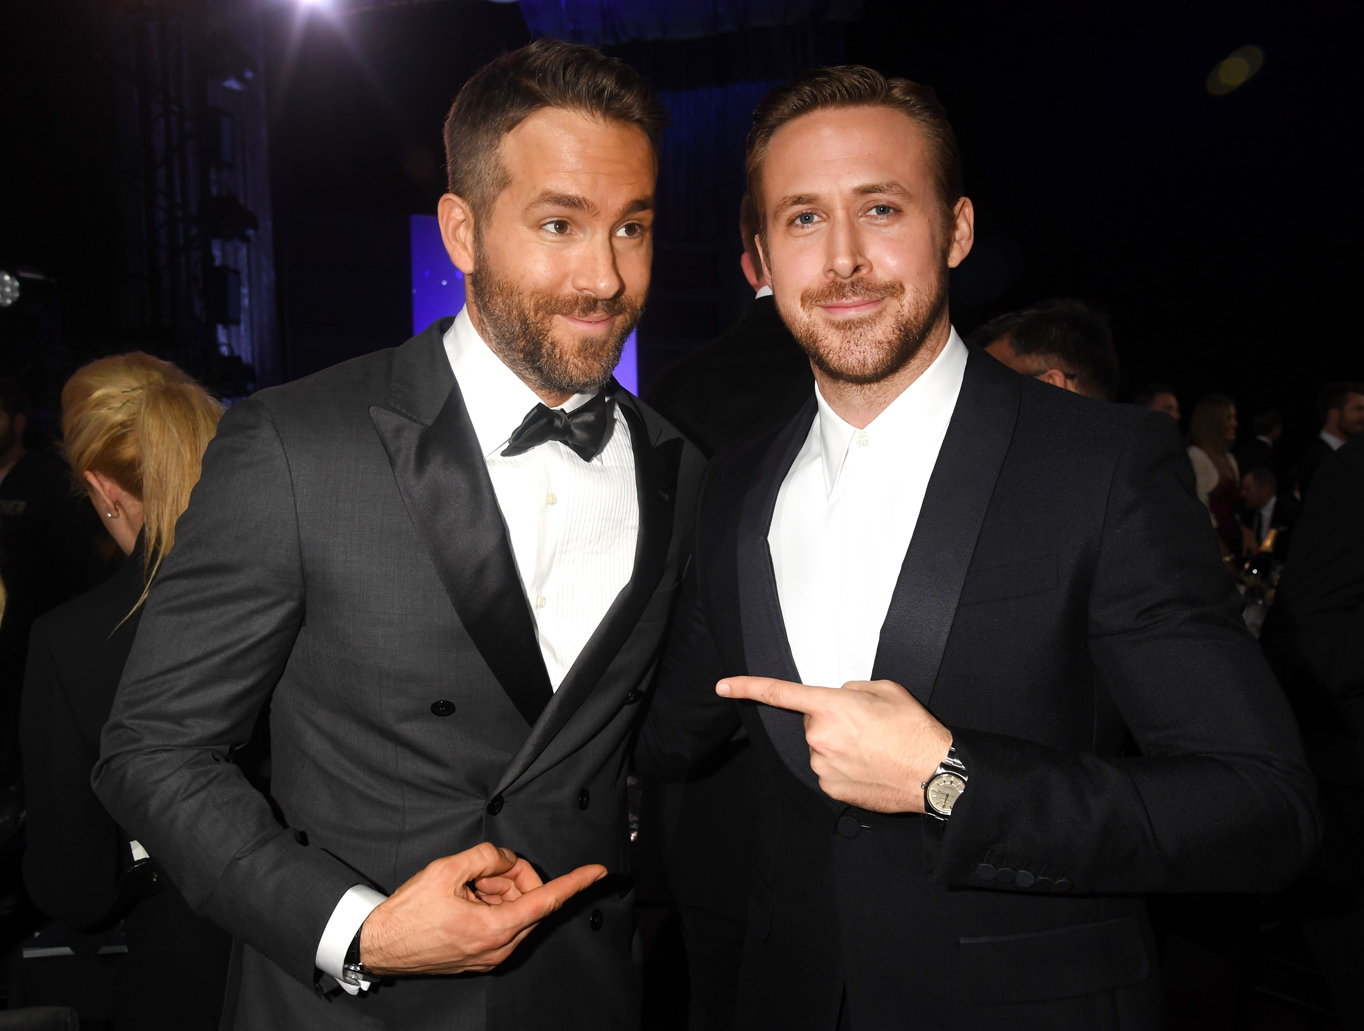 Ryan Reynolds and Ryan Gosling's Fangirl Moment Is Too Much to Handle